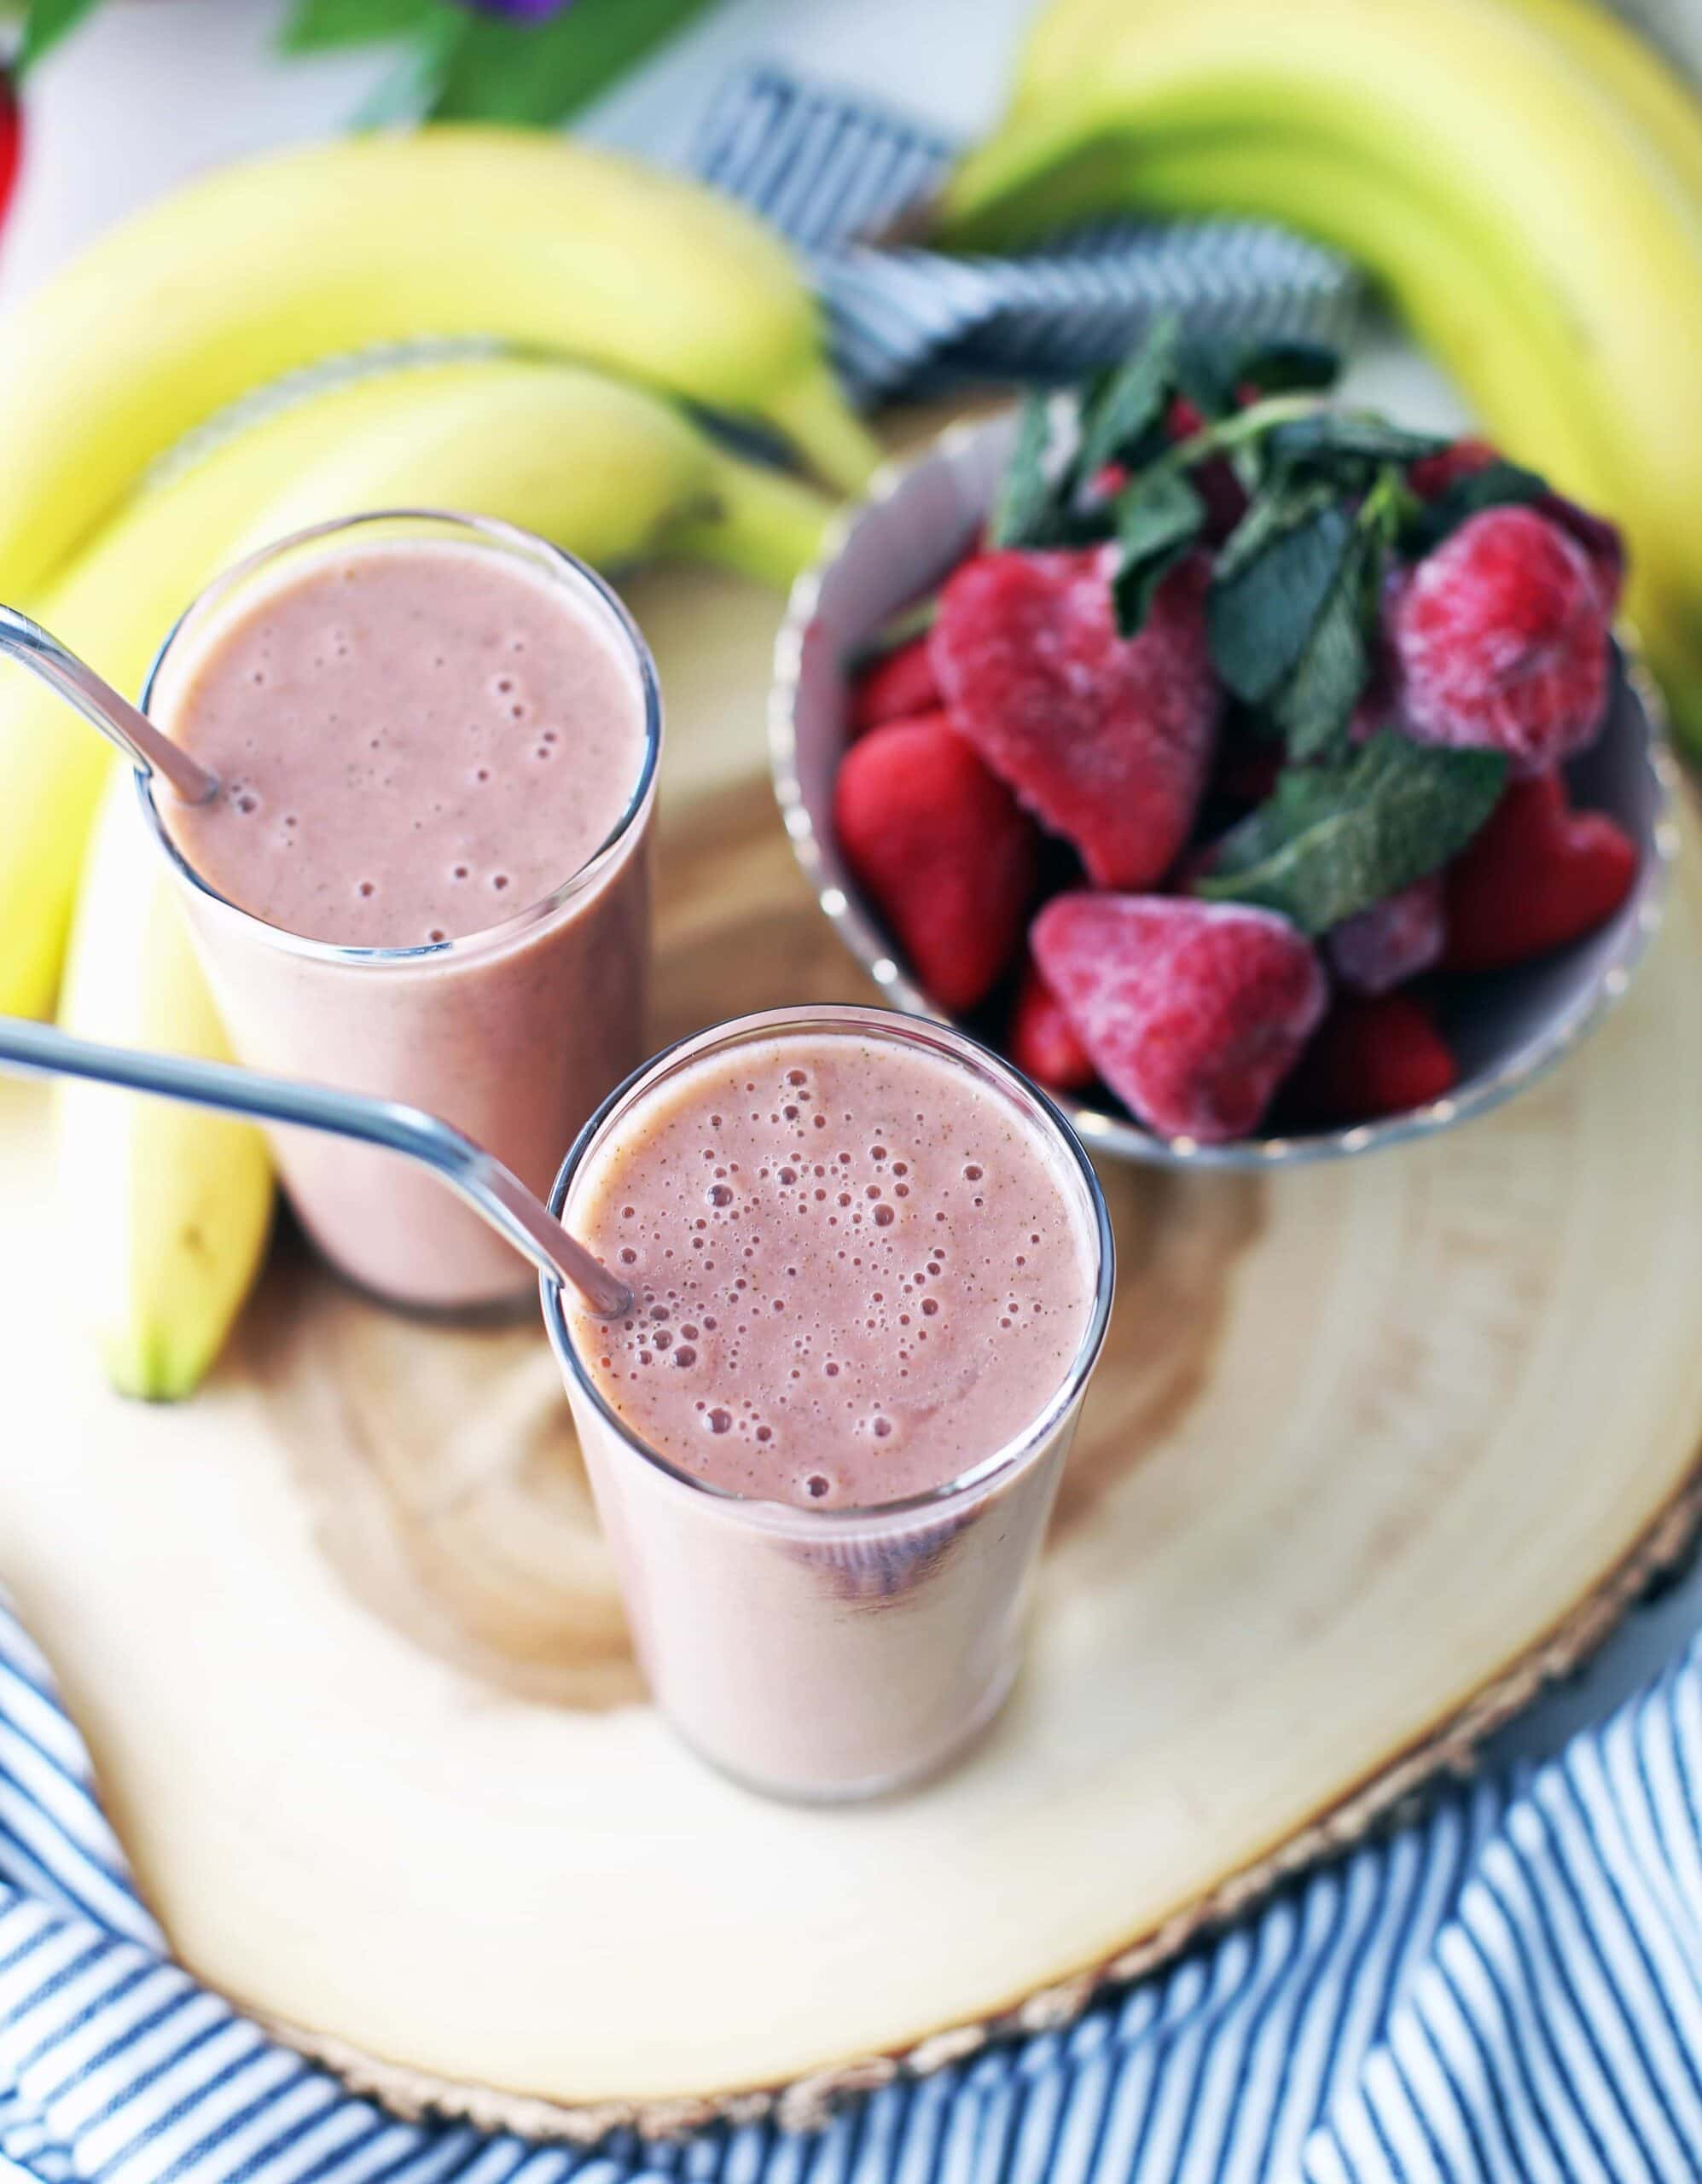 Two strawberry mint smoothies, a bowl of frozen strawberries, and bananas on a wooden platter.